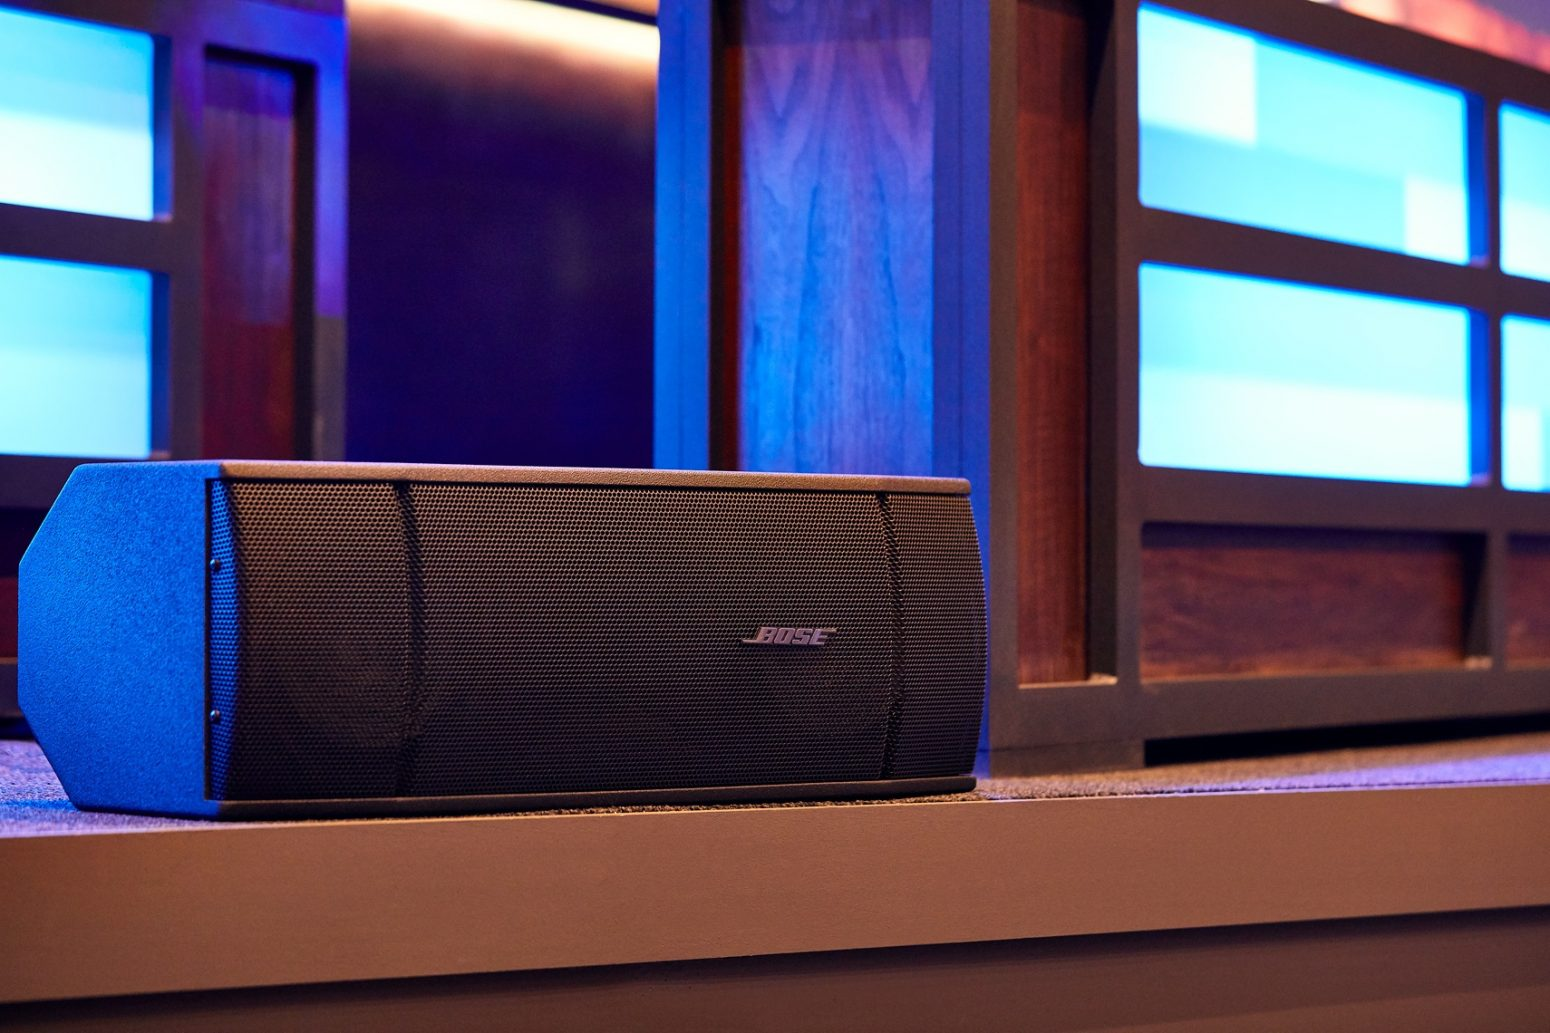 Bose speakers with AVL sound, installed for an audio design project by Paragon 360.